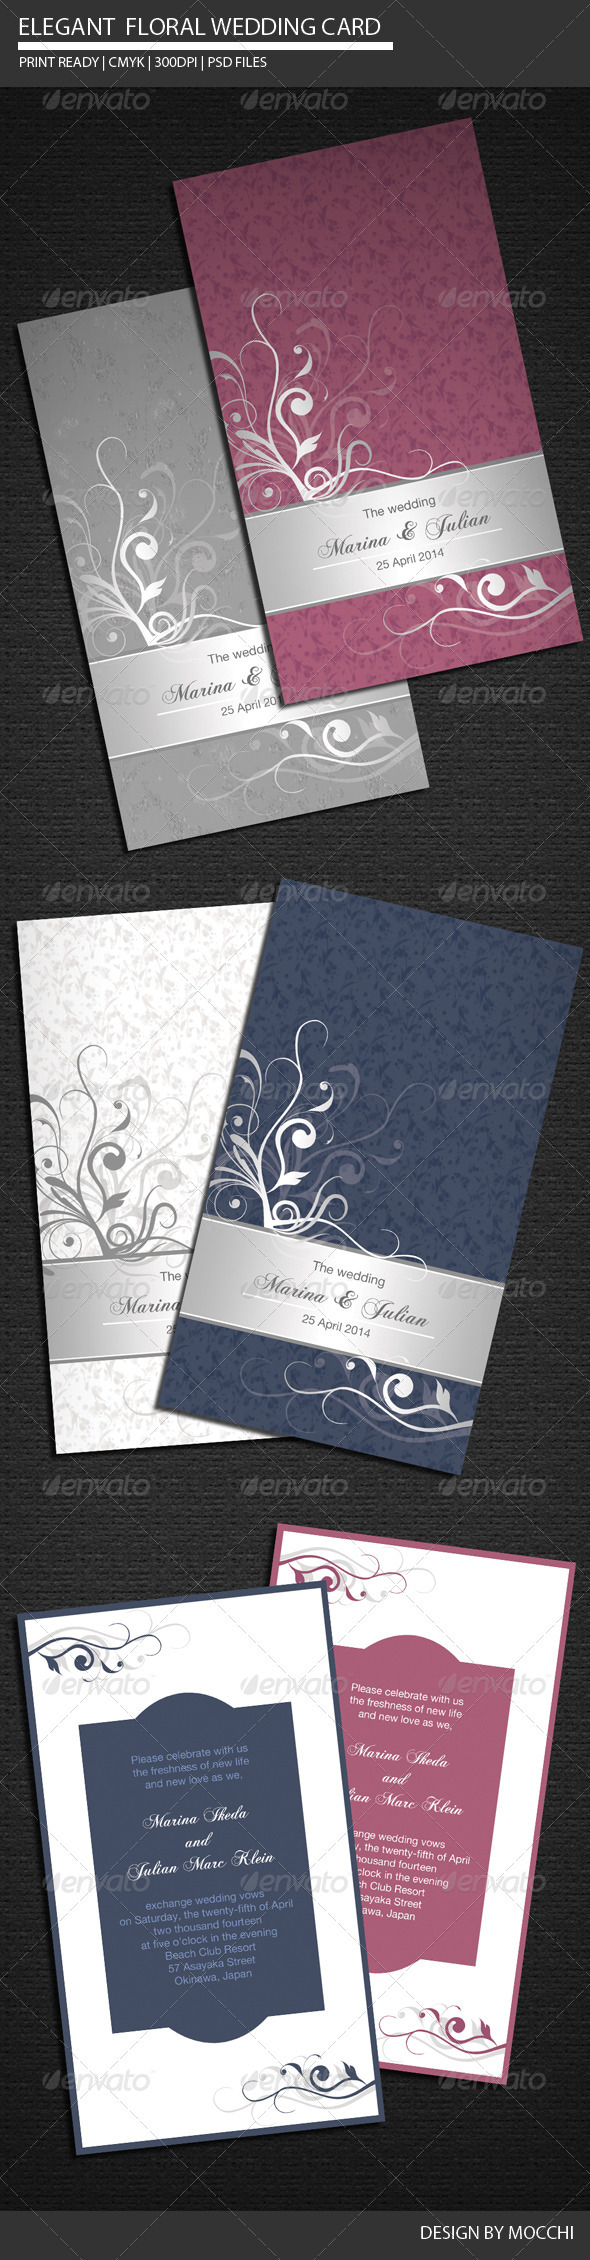 Elegant Floral Wedding Card - Weddings Cards &amp; Invites